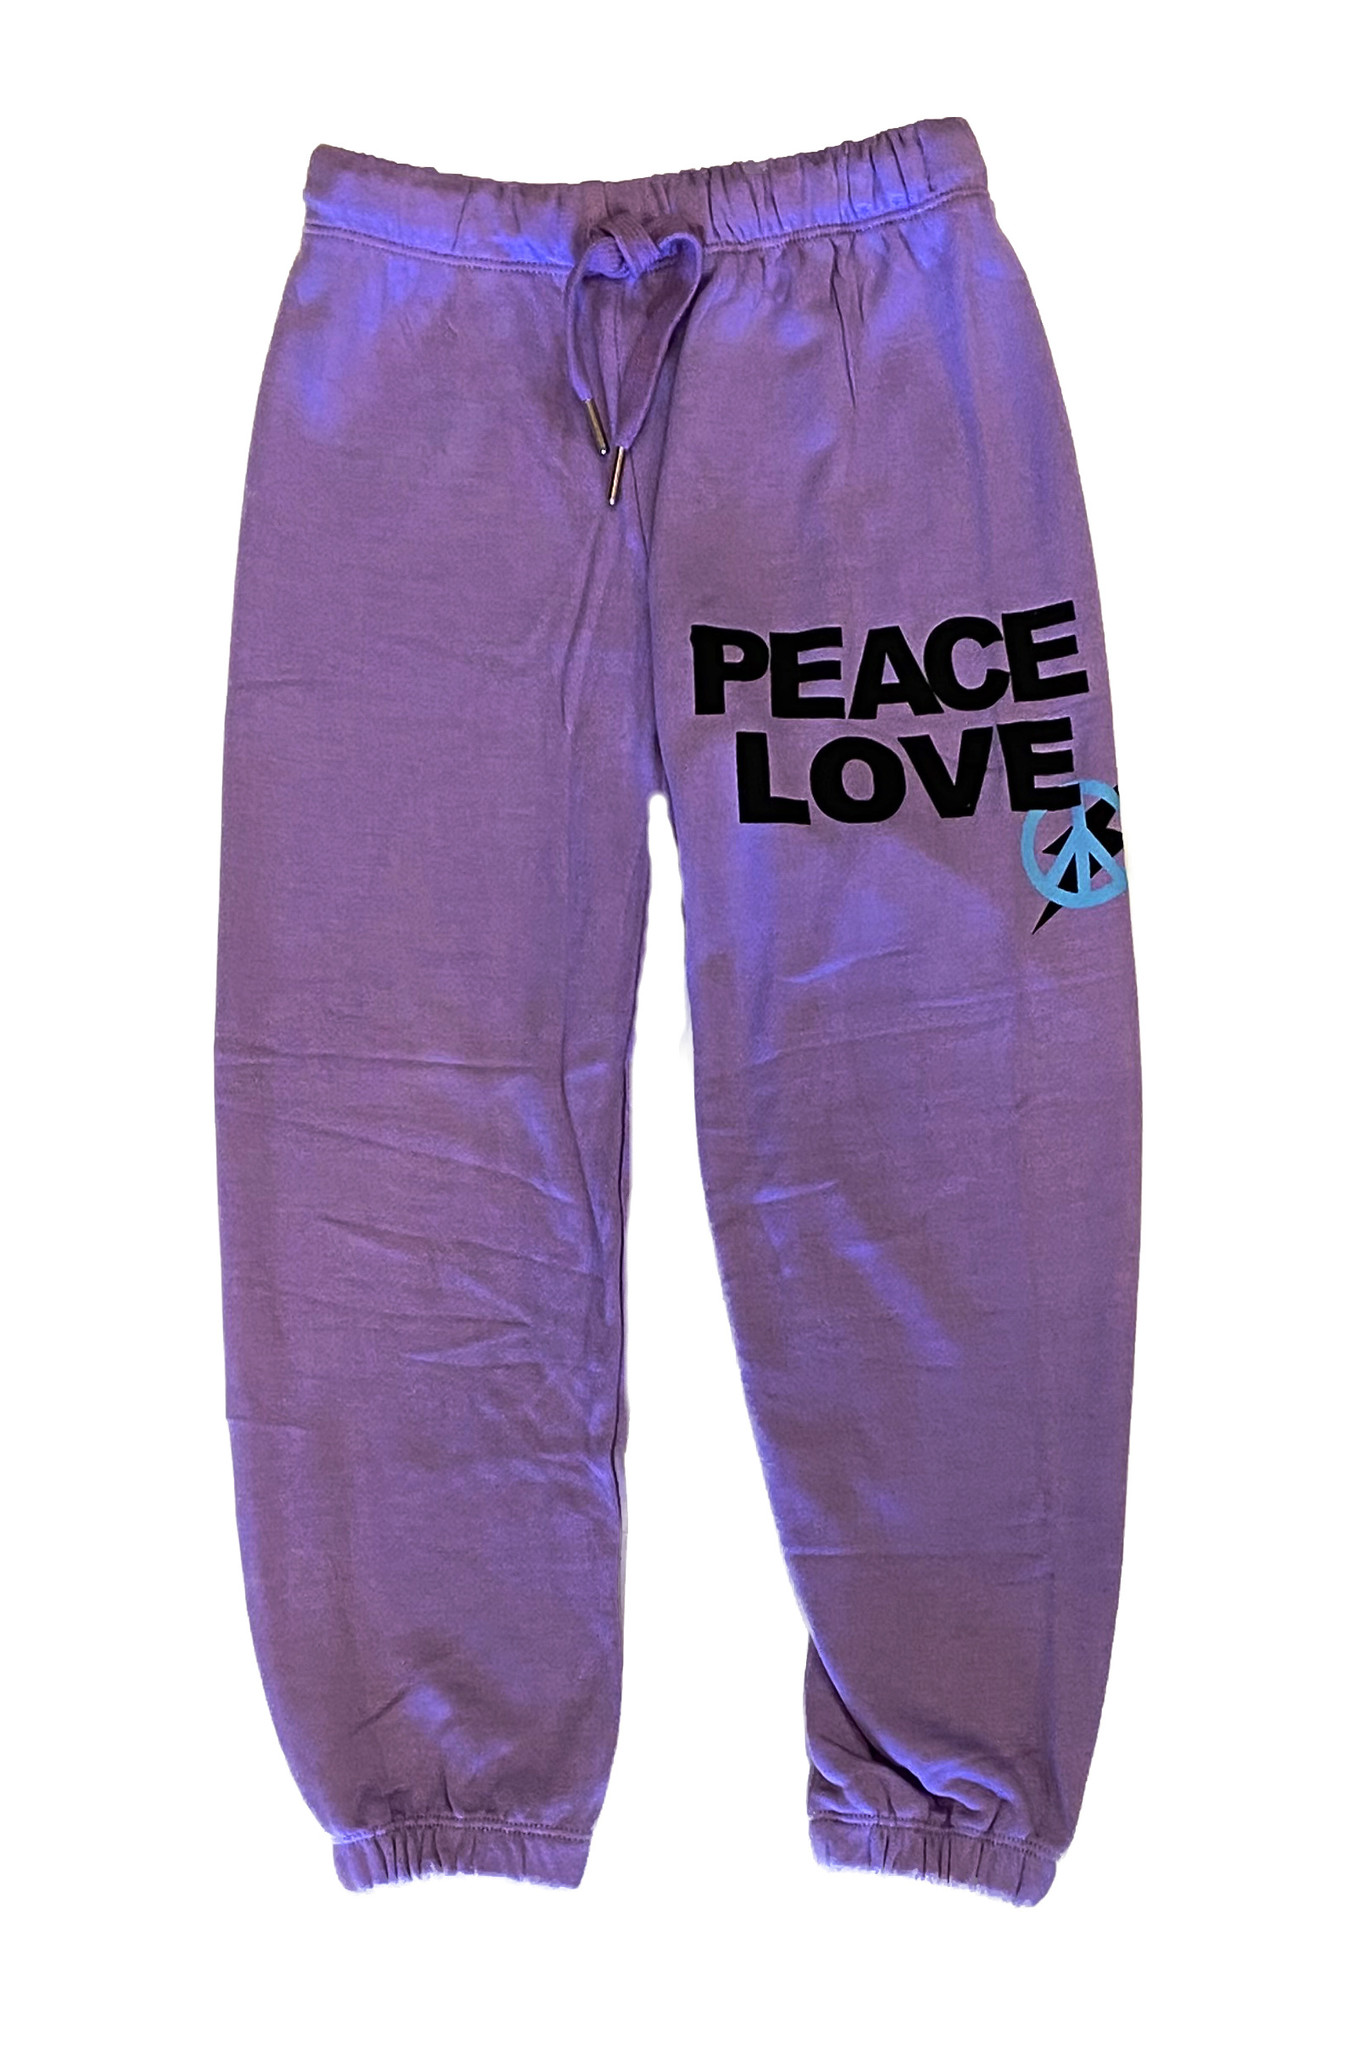 Flowers by Zoe Lavender Peace Love Sweatpant